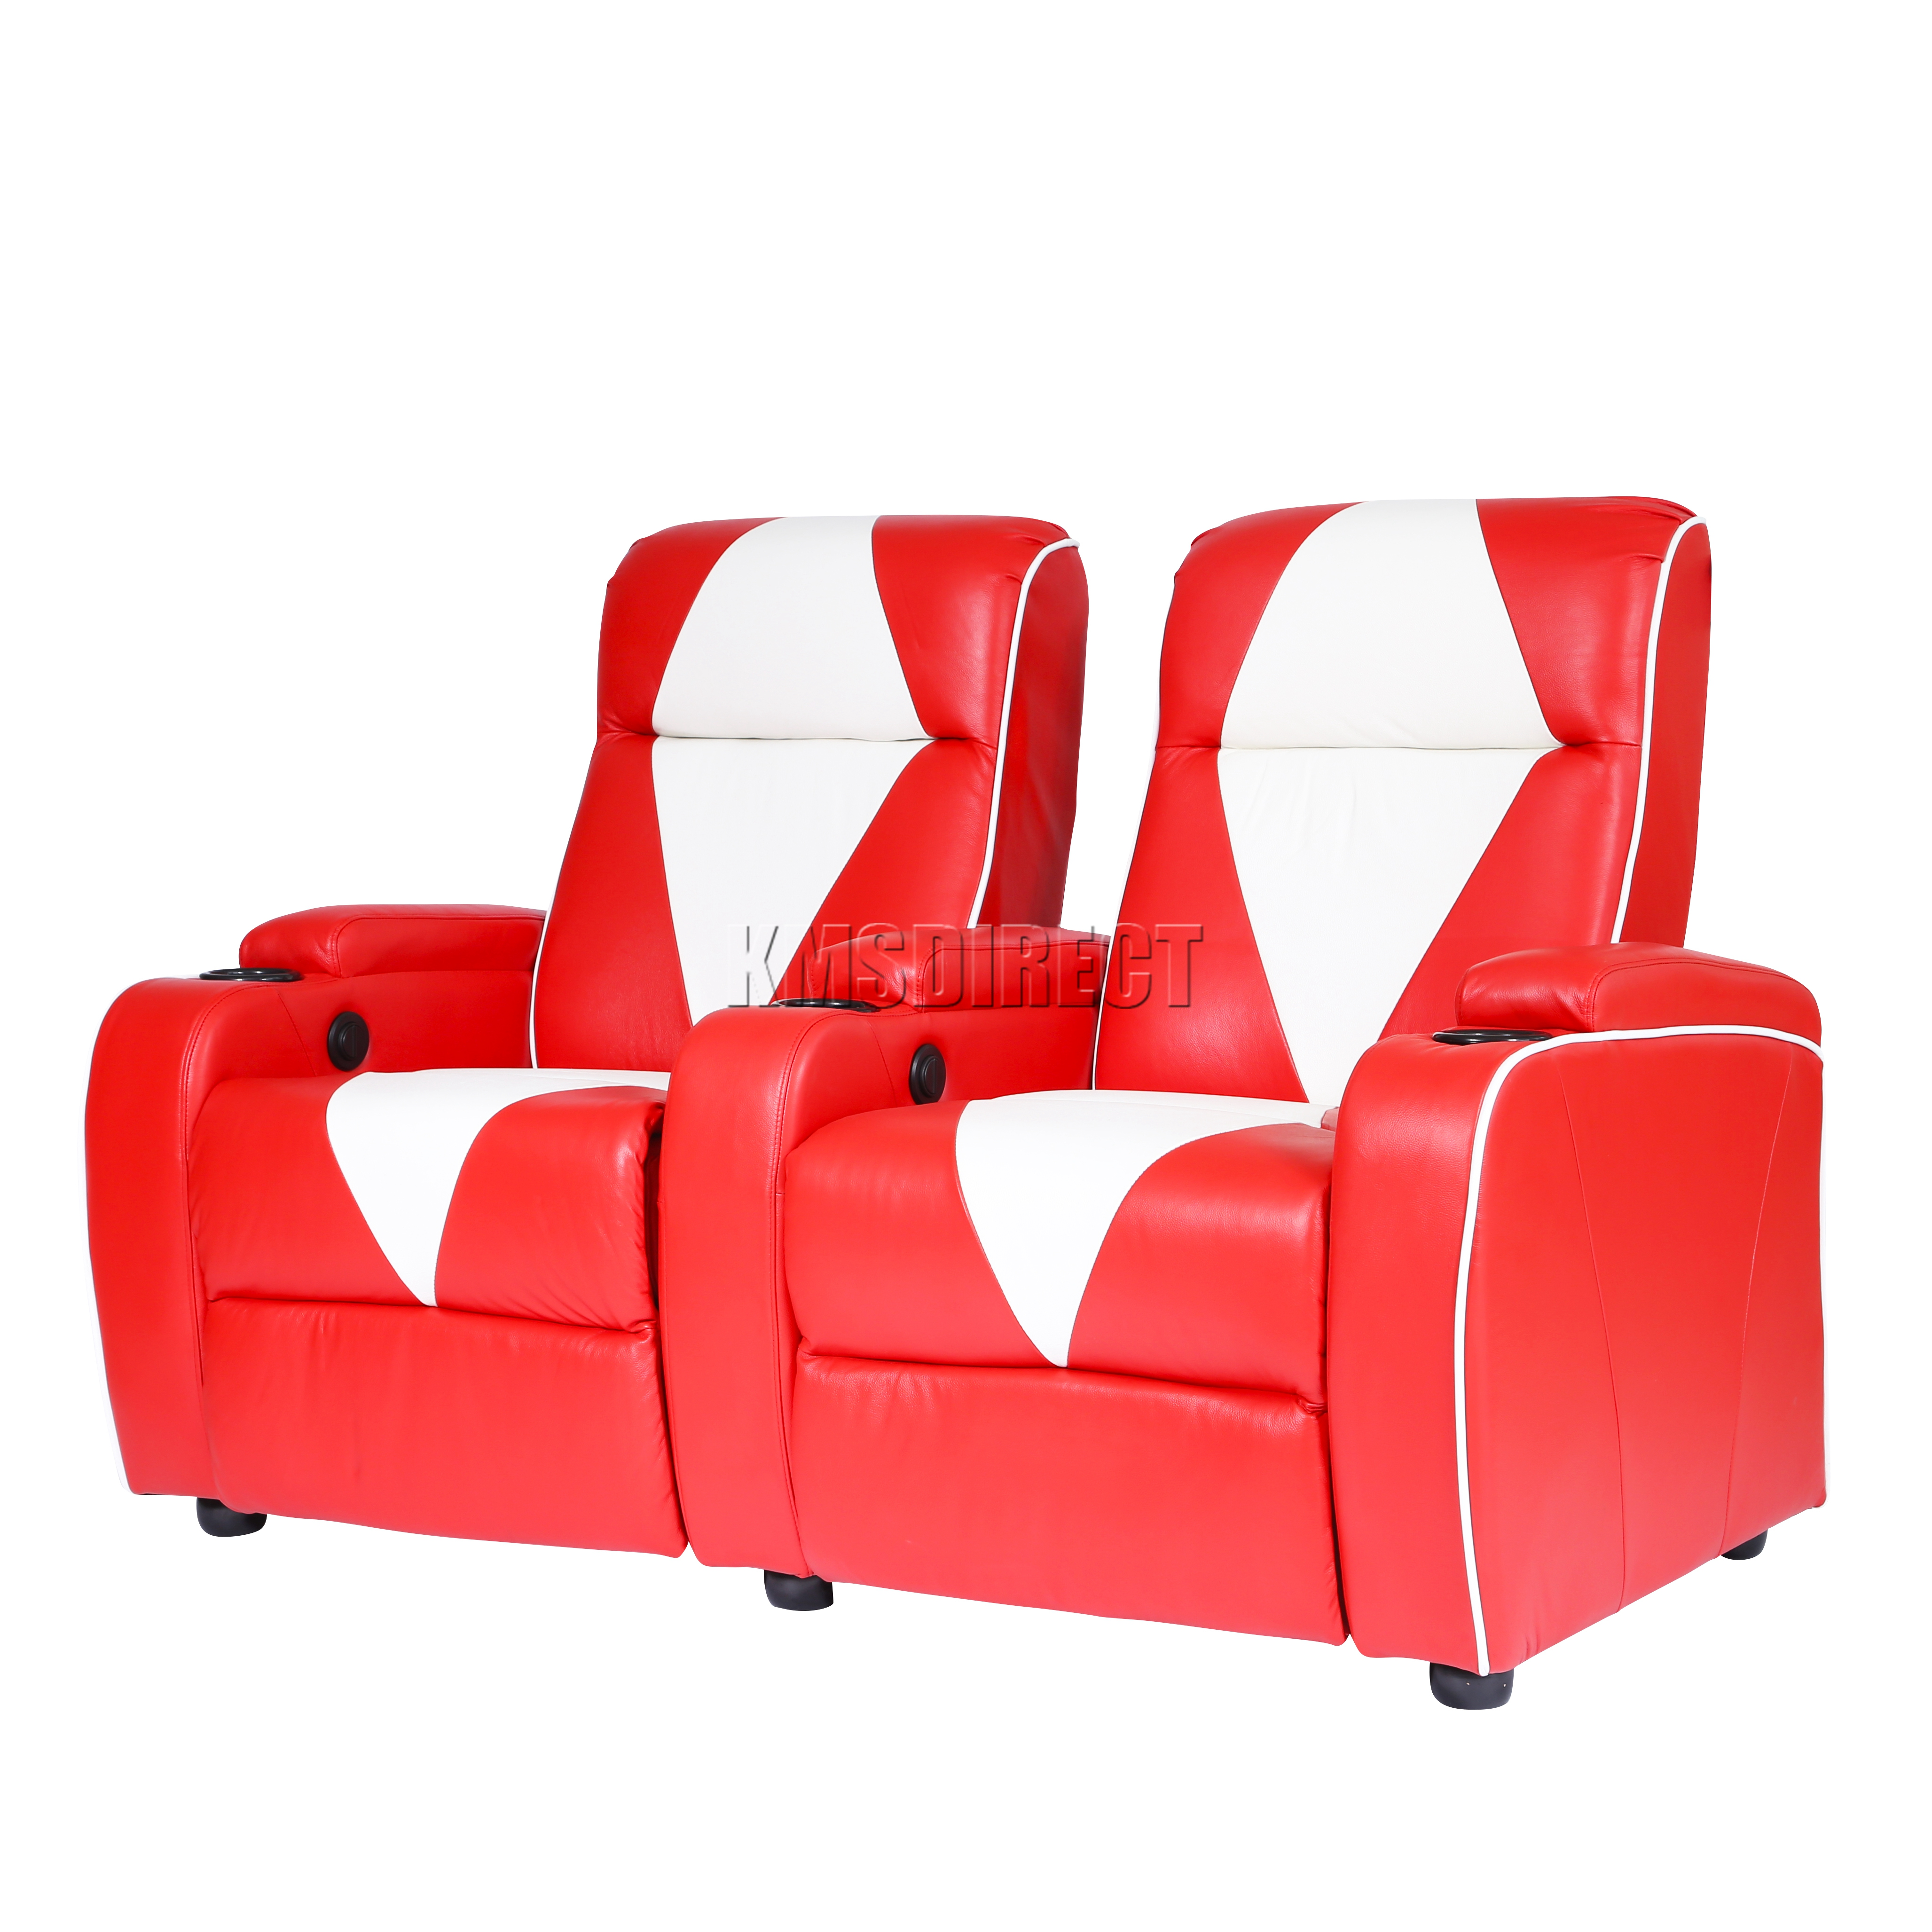 electric recliner sofa not working princess foxhunter leather retro cinema movie chair 2 seat